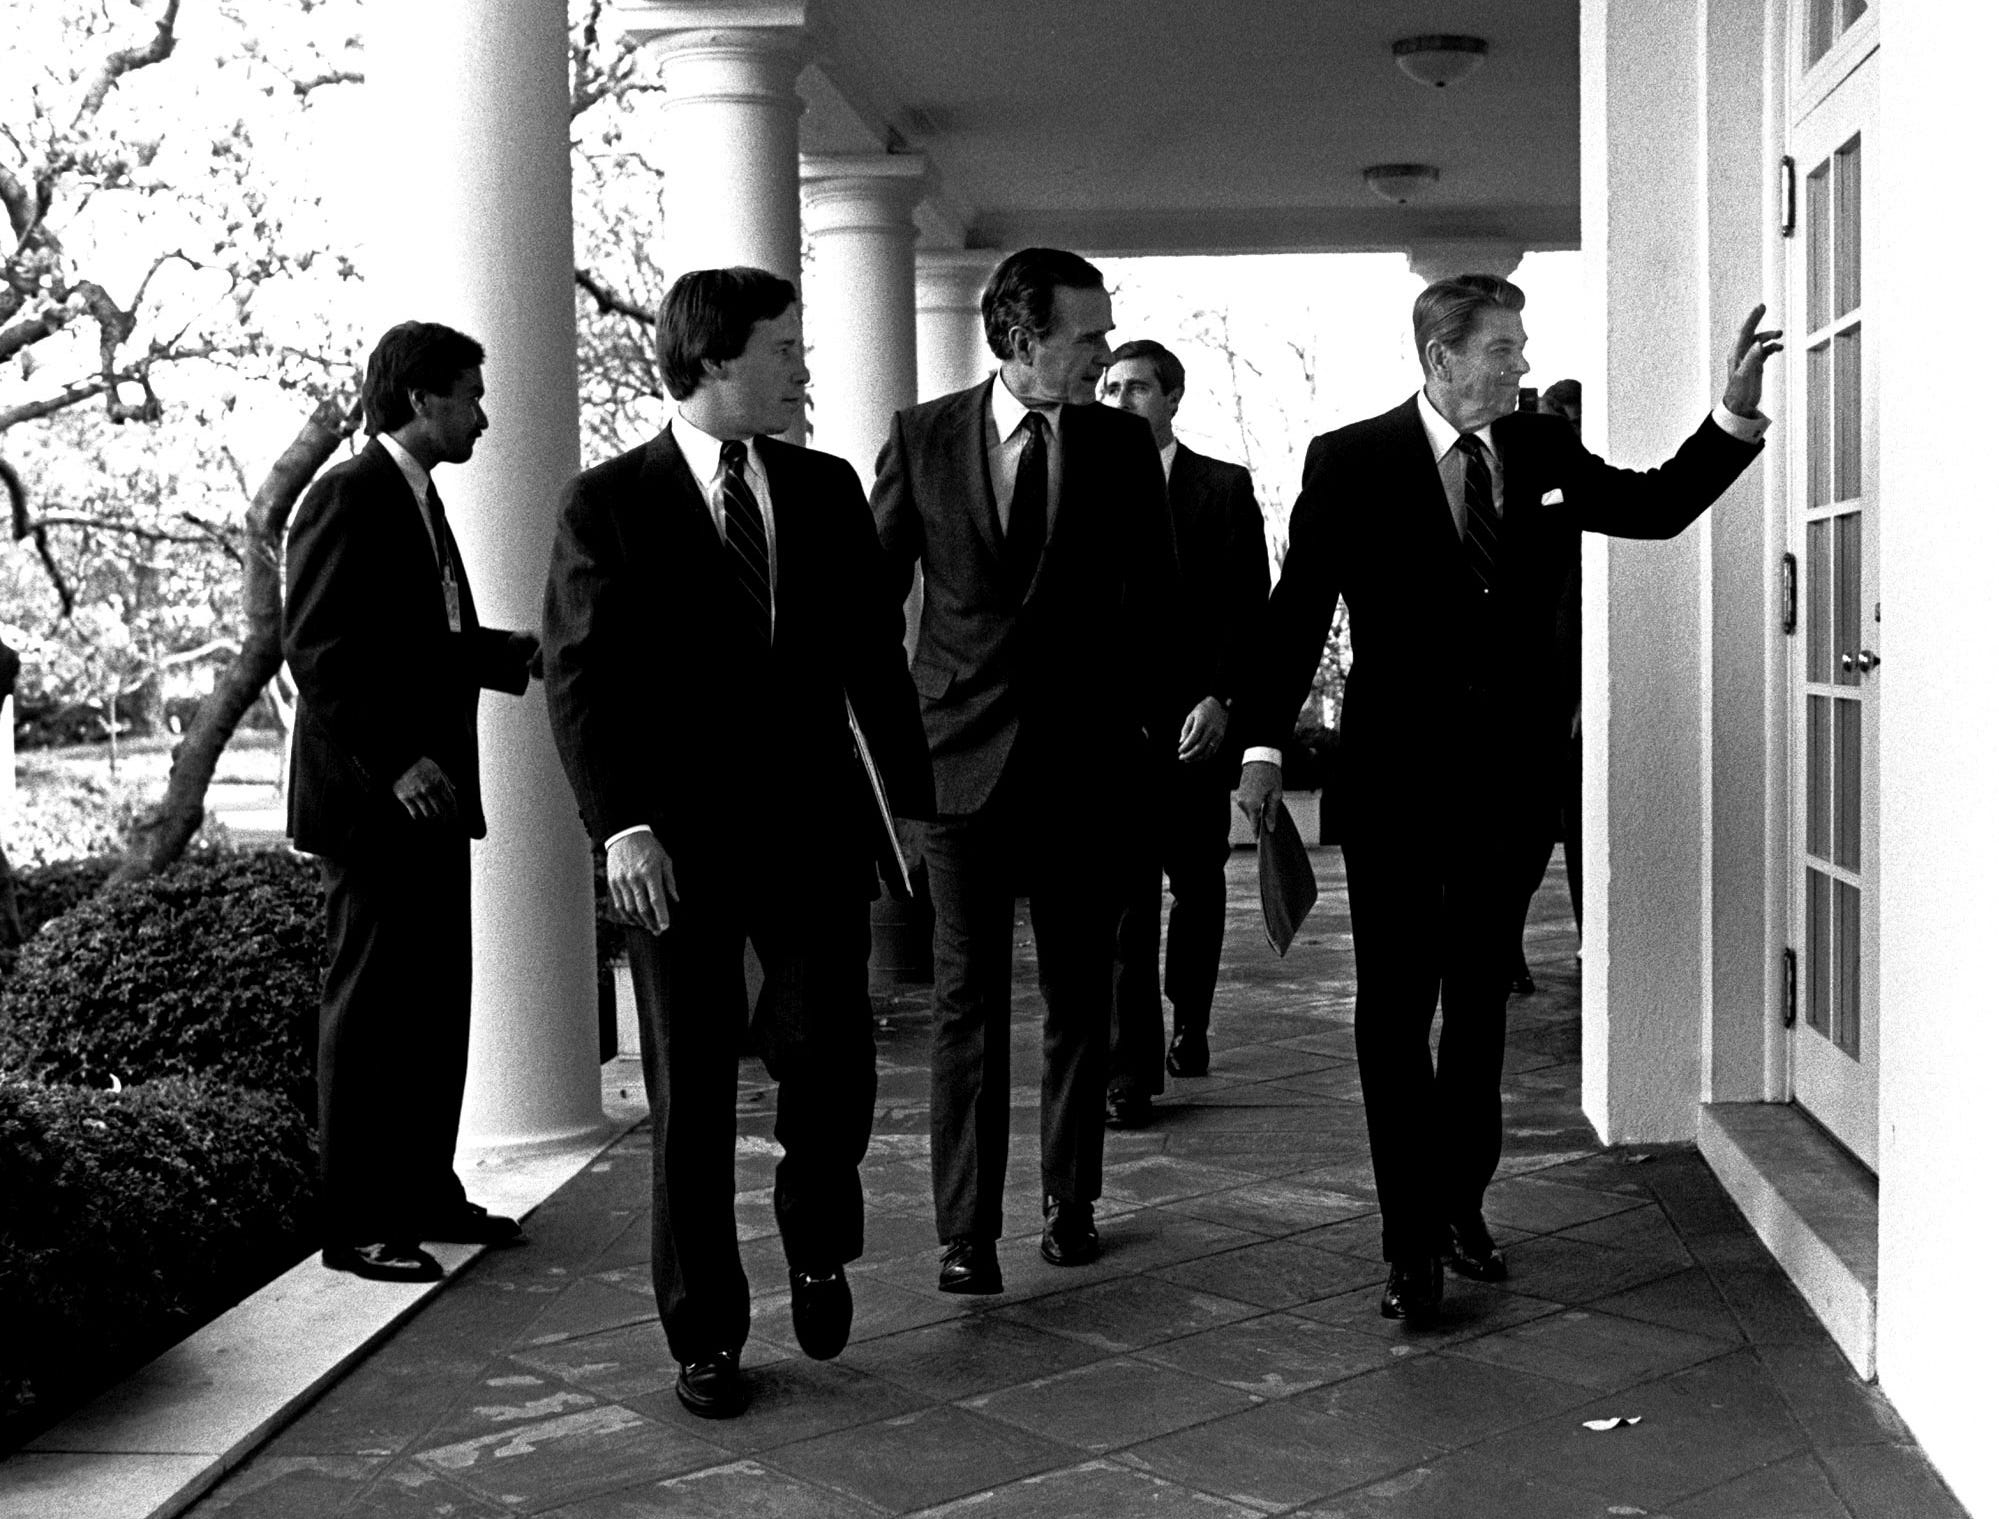 President Reagan waves to a staffer while walking with Vice-President Bush at the White House, April, 1985.